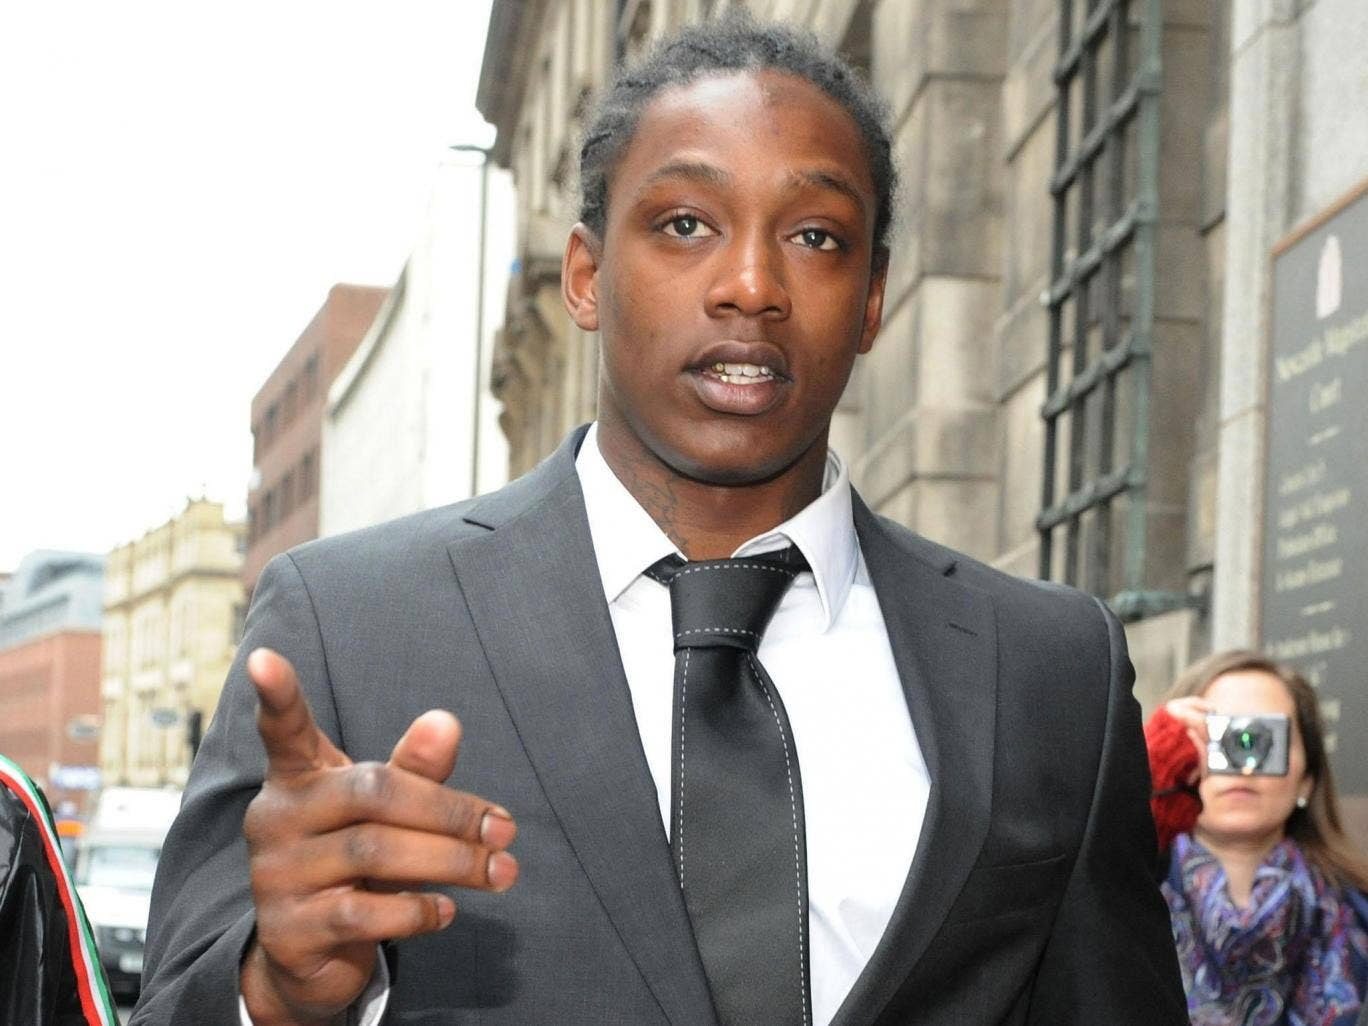 Troubled ex-Premier League striker Nile Ranger was handed a 12- month community order today for pulling his girlfriend's hair during a row